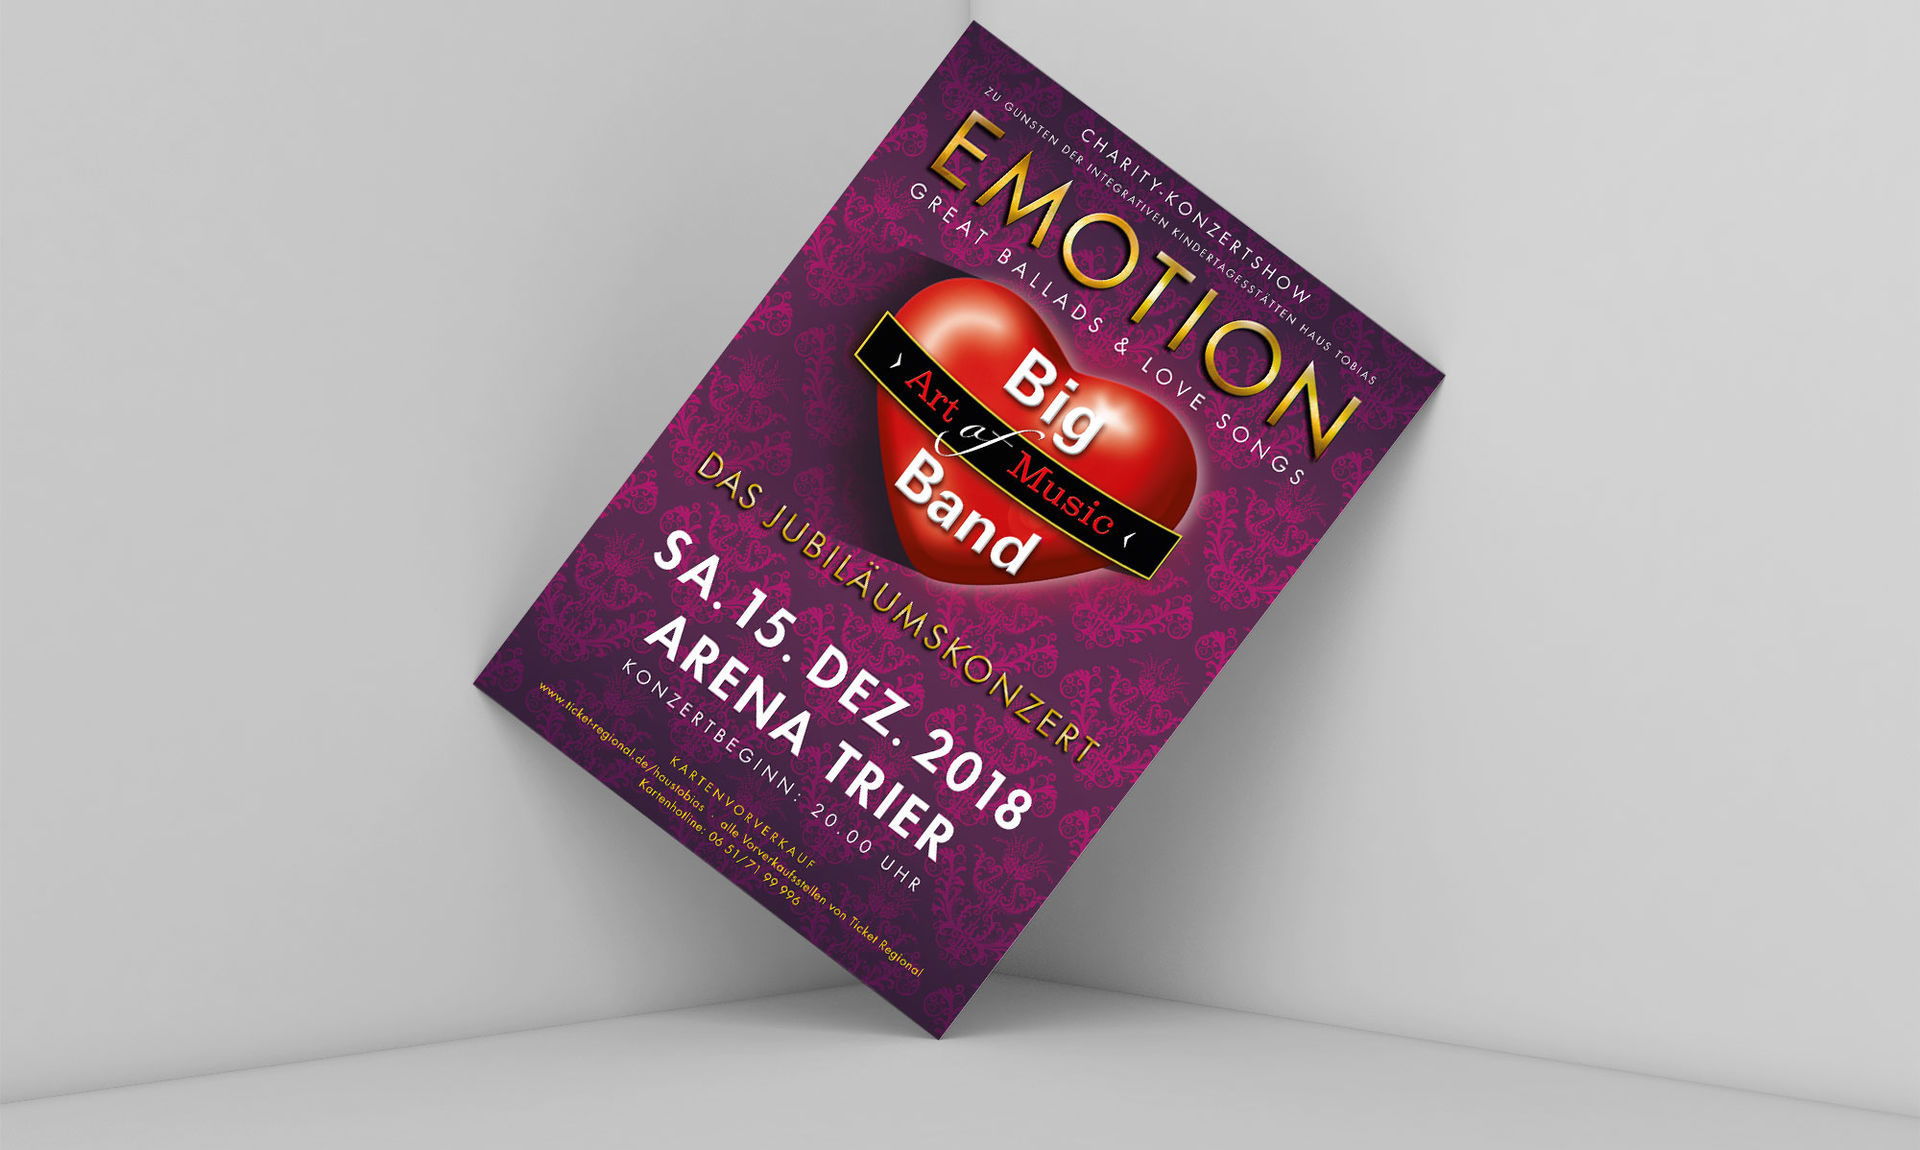 Big Band Art of Music Konzertflyer Emotion